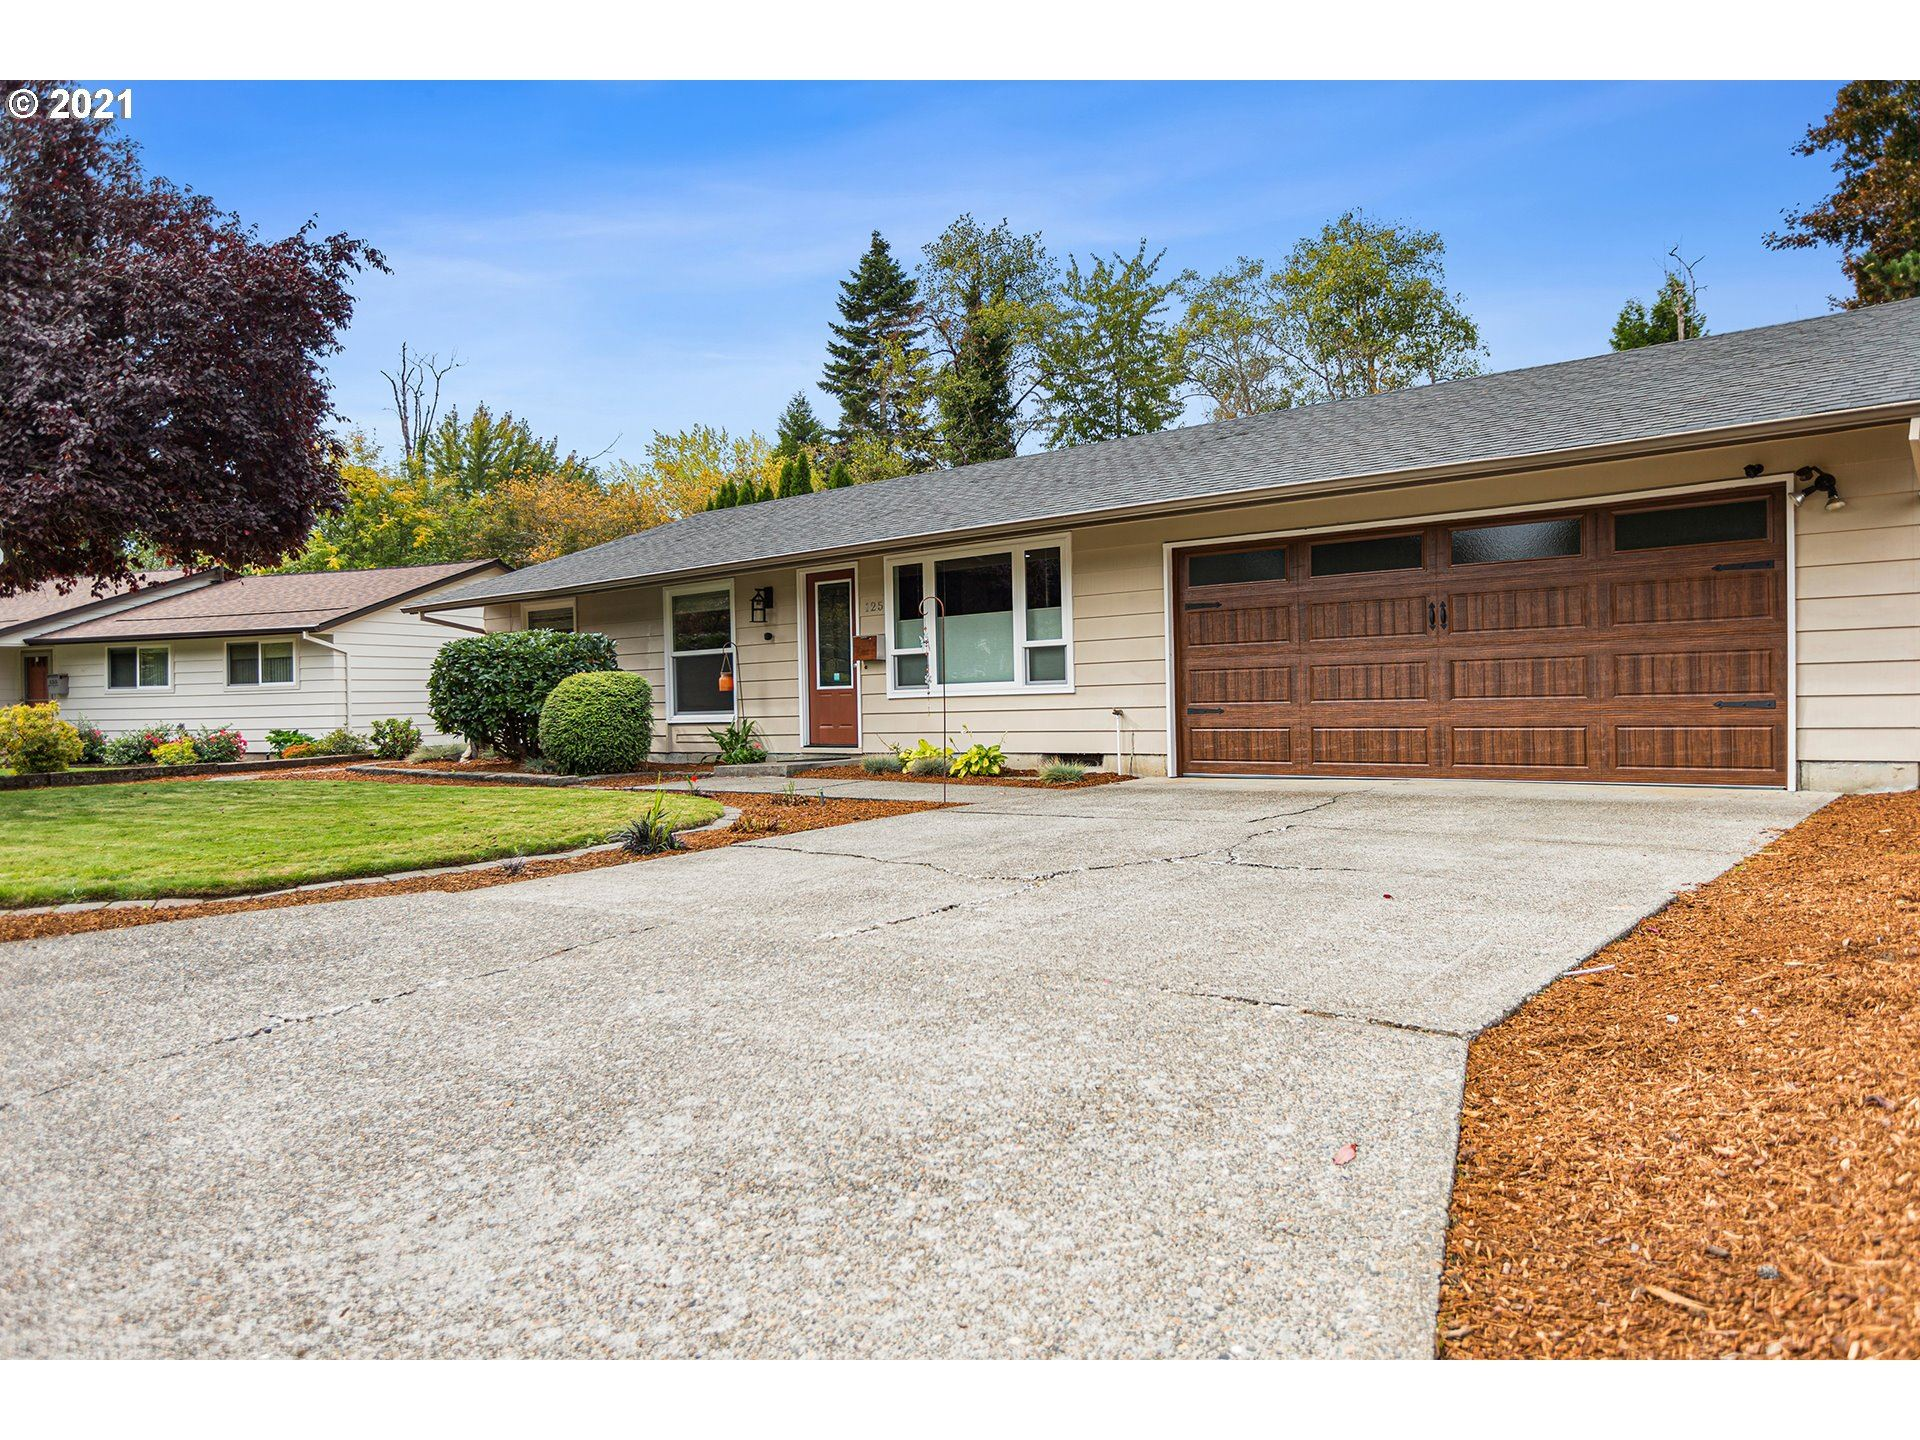 Photo of 125 SW 130TH AVE, Beaverton, OR 97005 (MLS # 21335270)